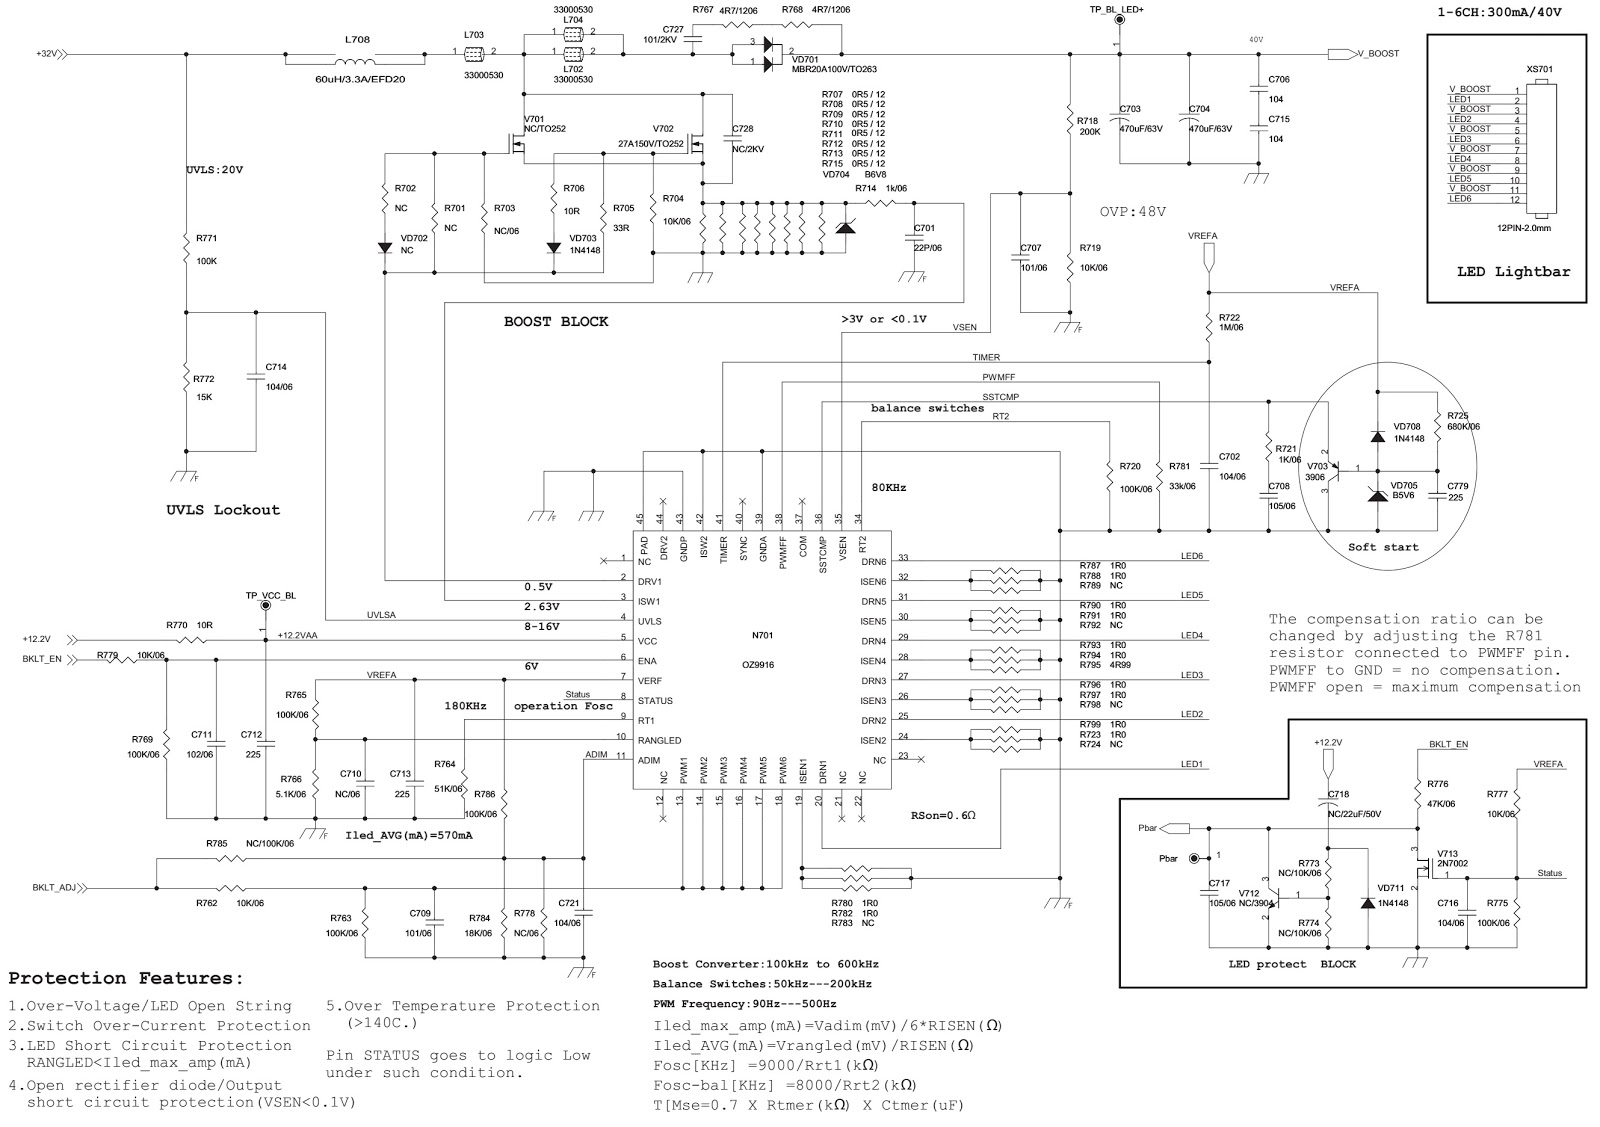 Toshiba 48L2400 DL4845i SMPS and audio amplifier circuit diagram